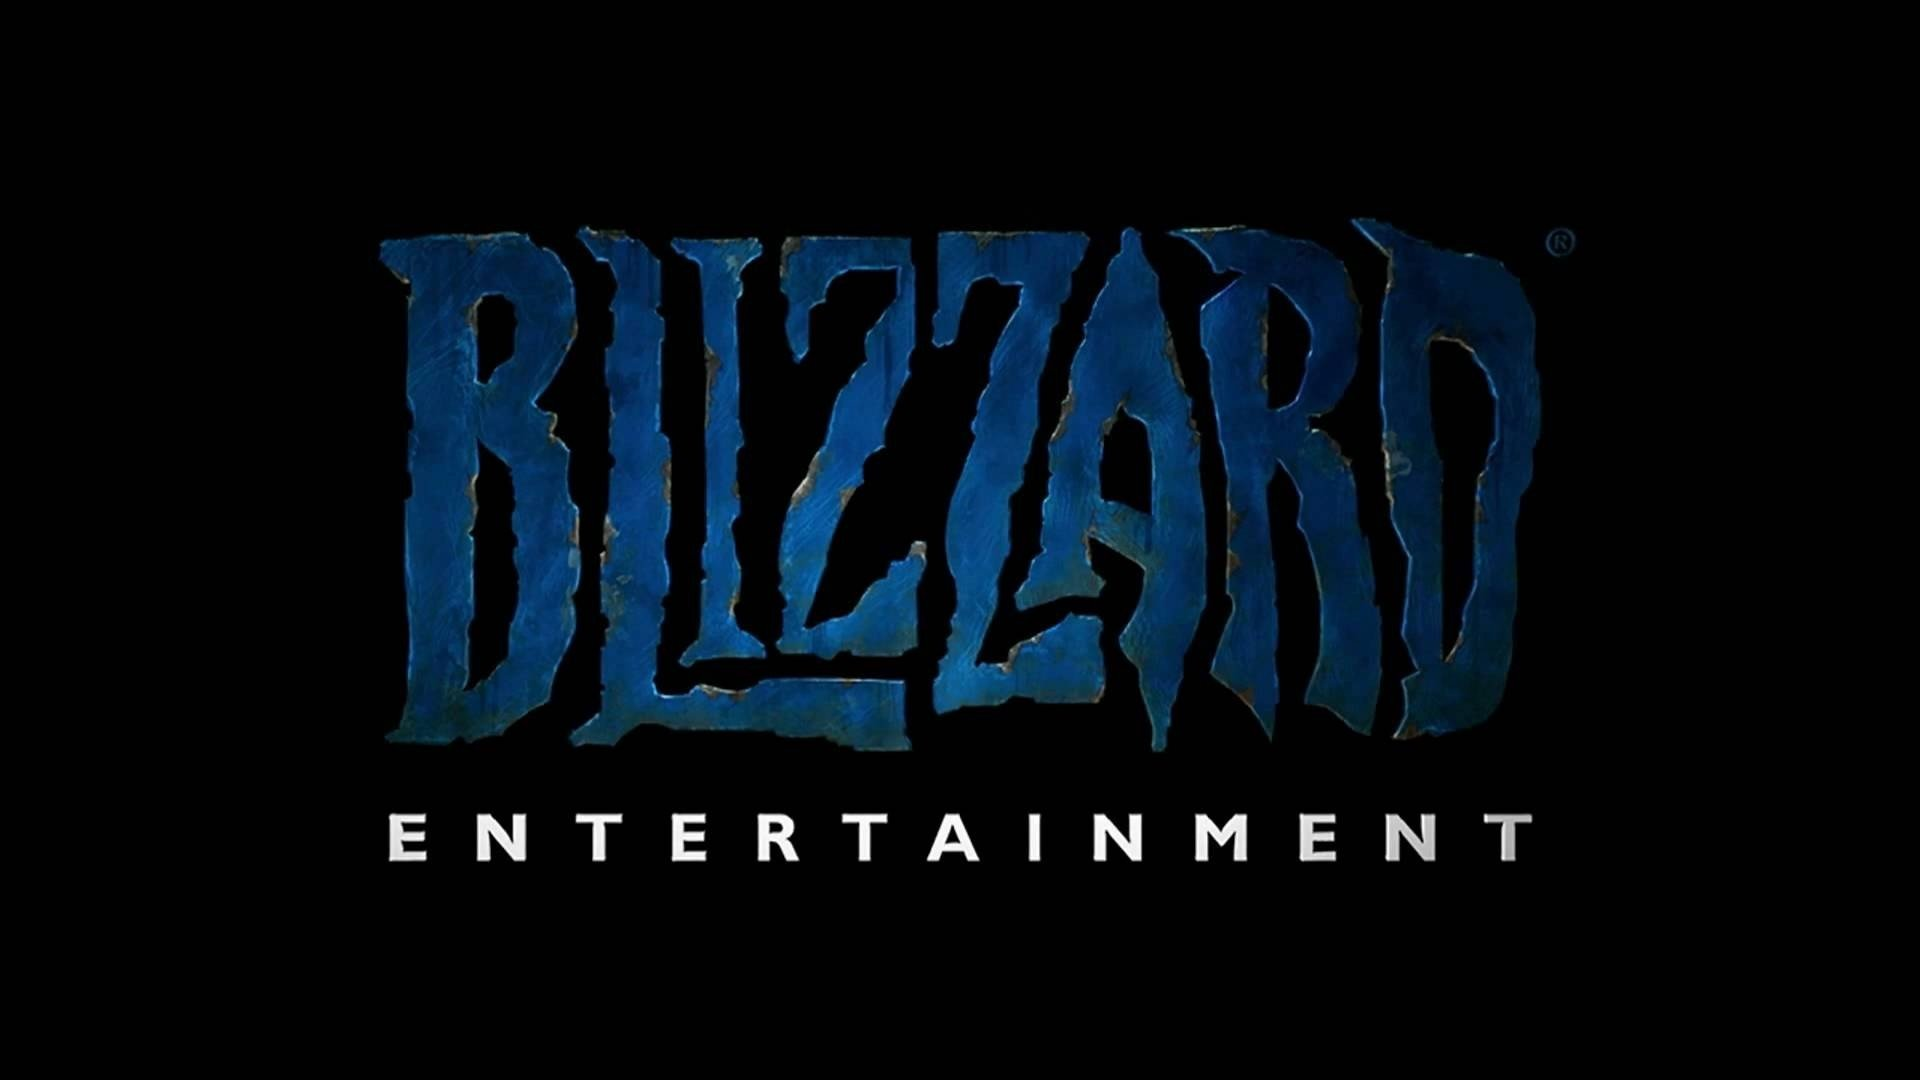 3 Blizzard Hd Wallpapers Background Images Wallpaper Abyss